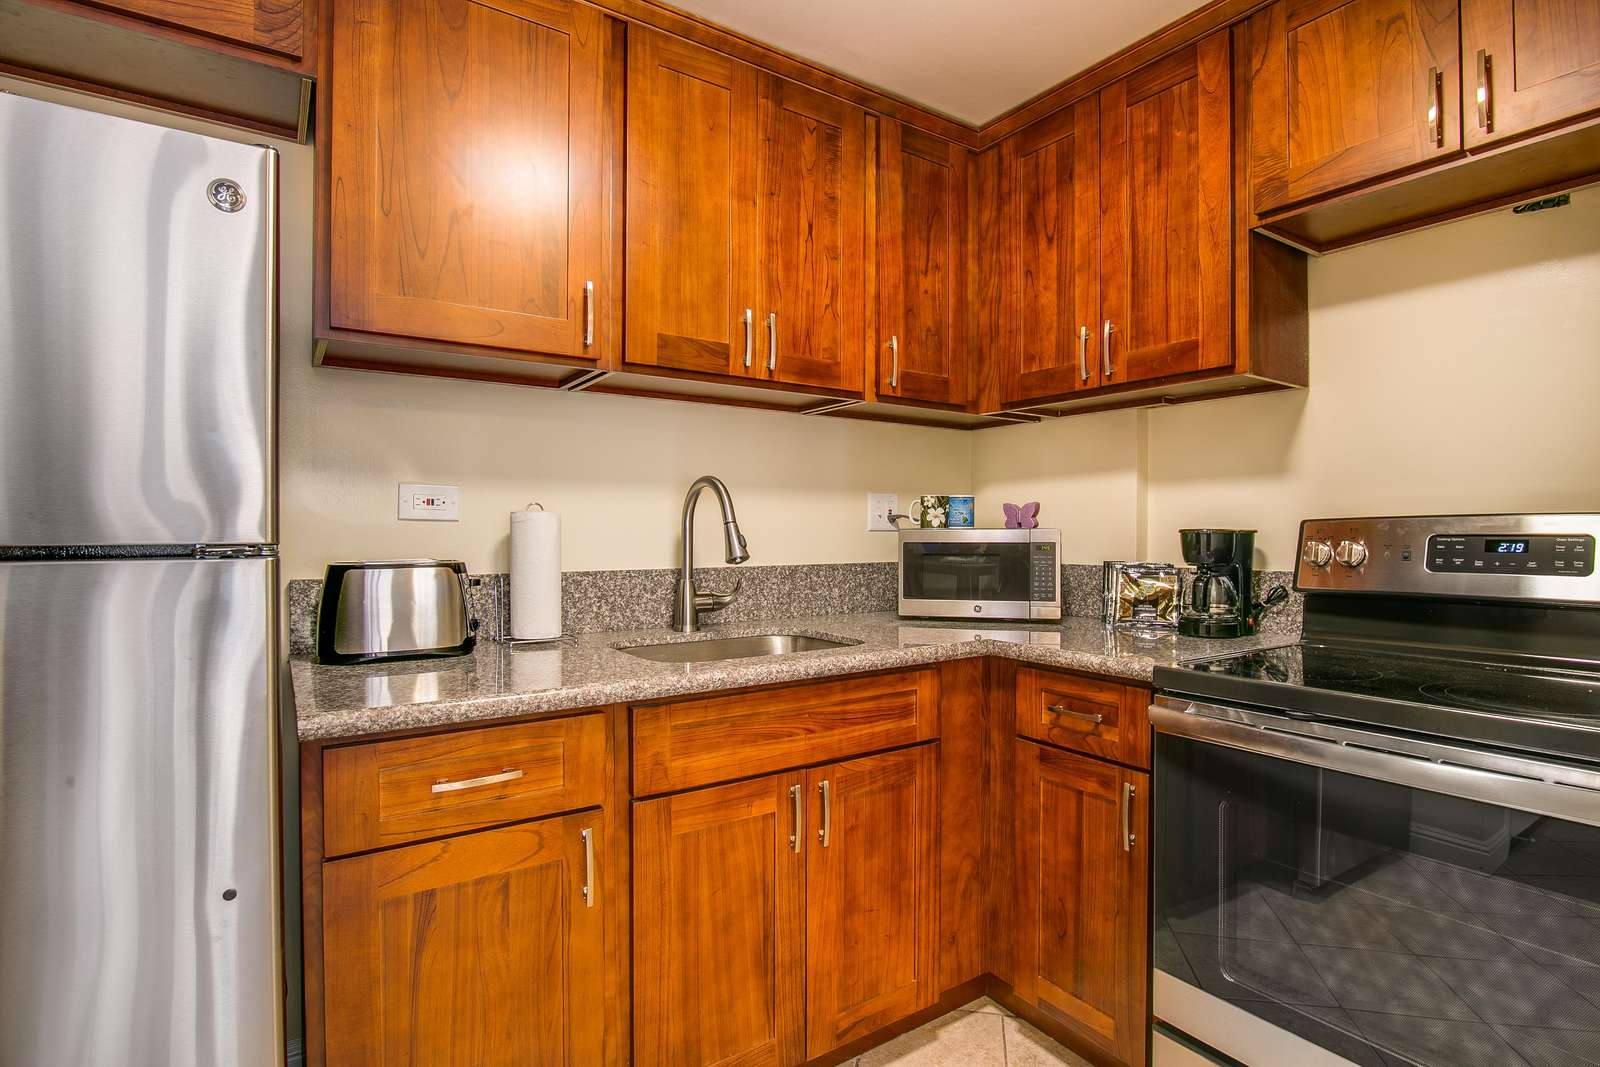 Brand new kitchen with marble counters and new appliances